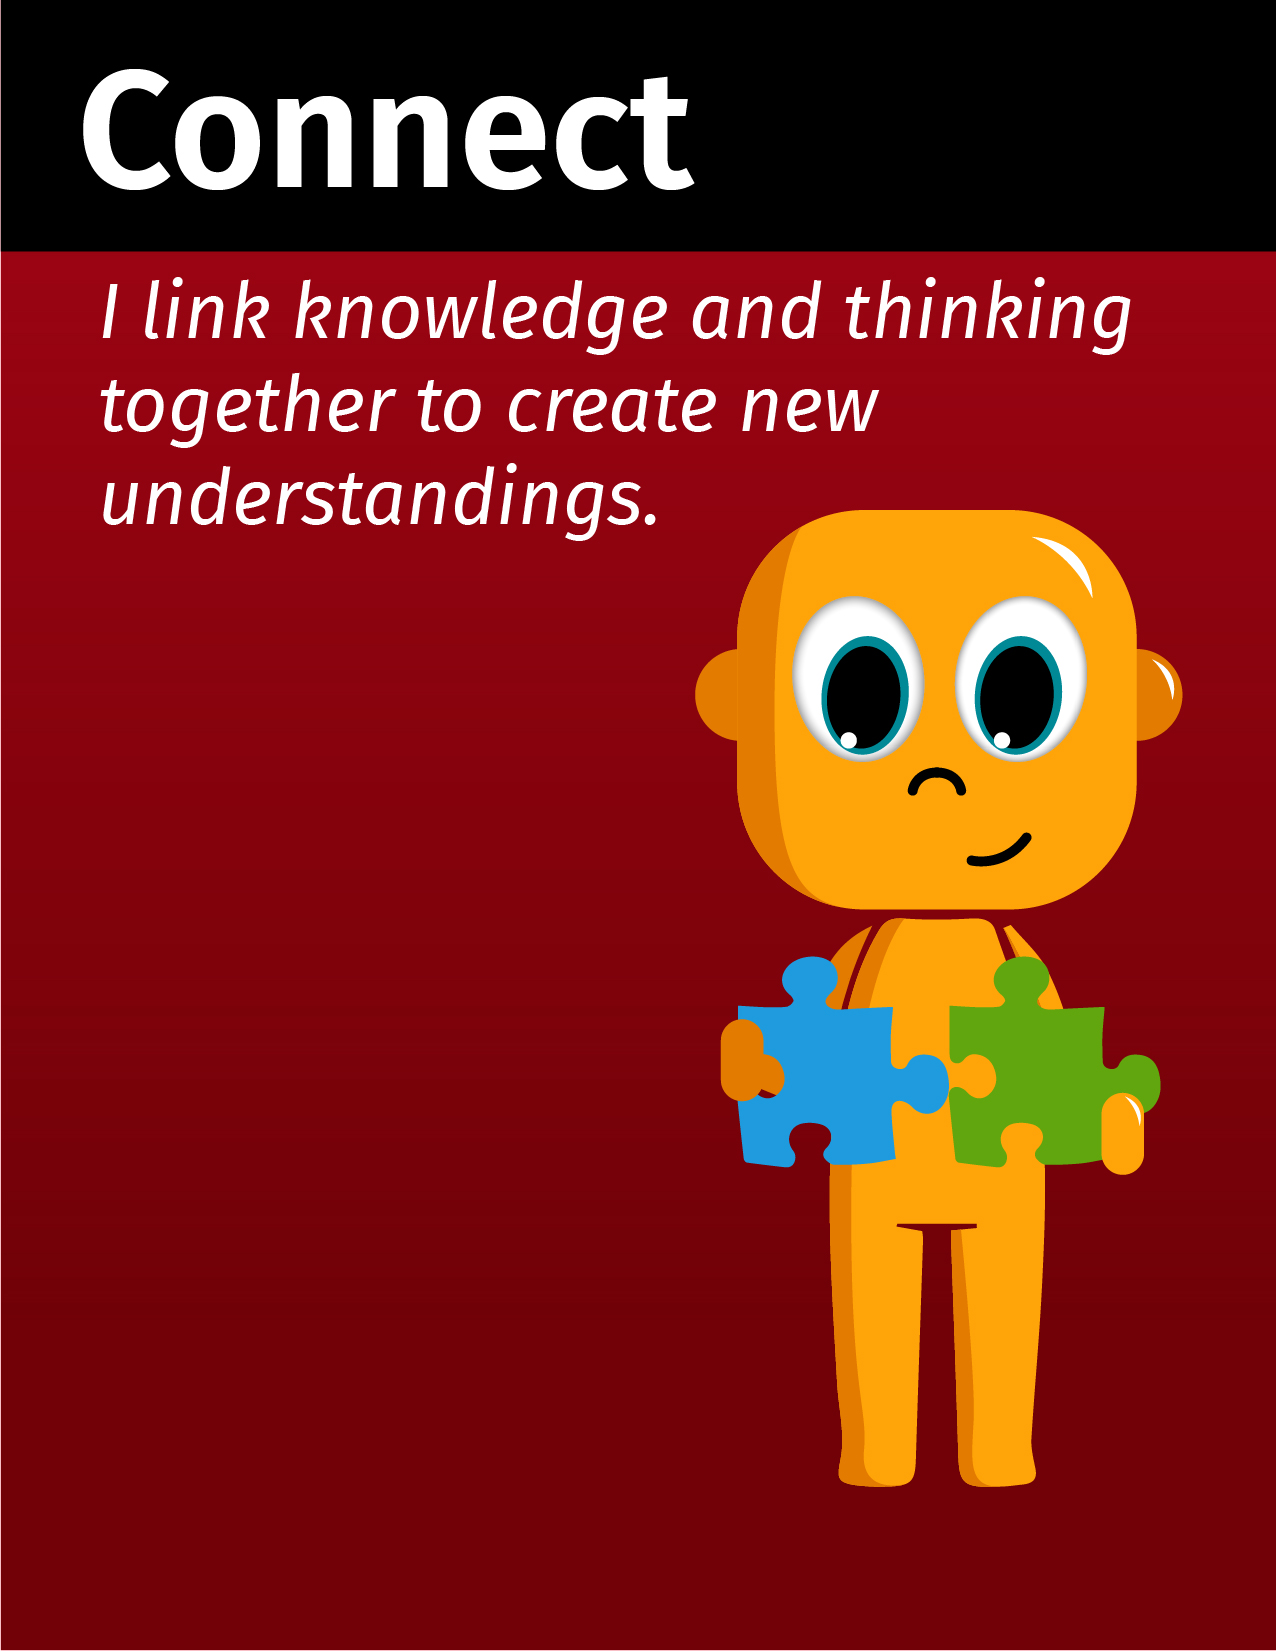 Graphical Learner connecting and stating I link knowledge and thinking together to create new understandings.